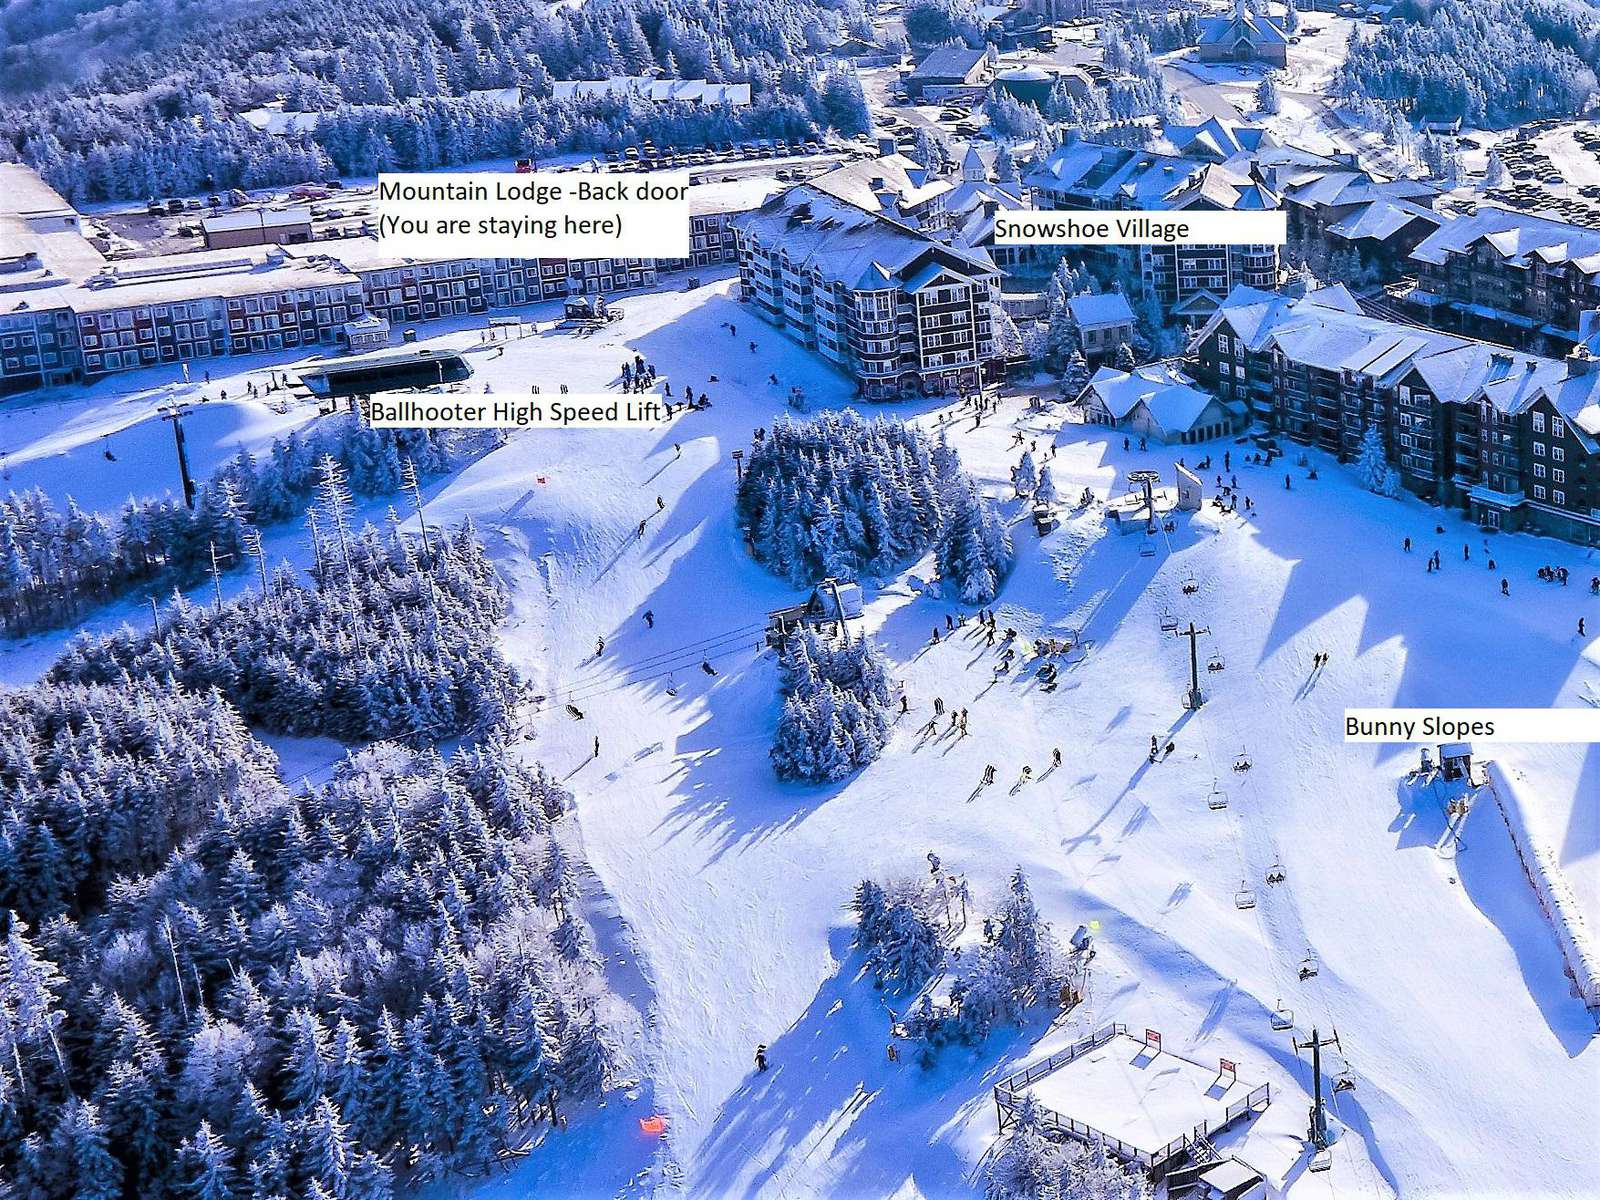 Mountain Lodge Back door, Ballhooter High Speed Lift and Village - All together - Best Location on the Mountain - property